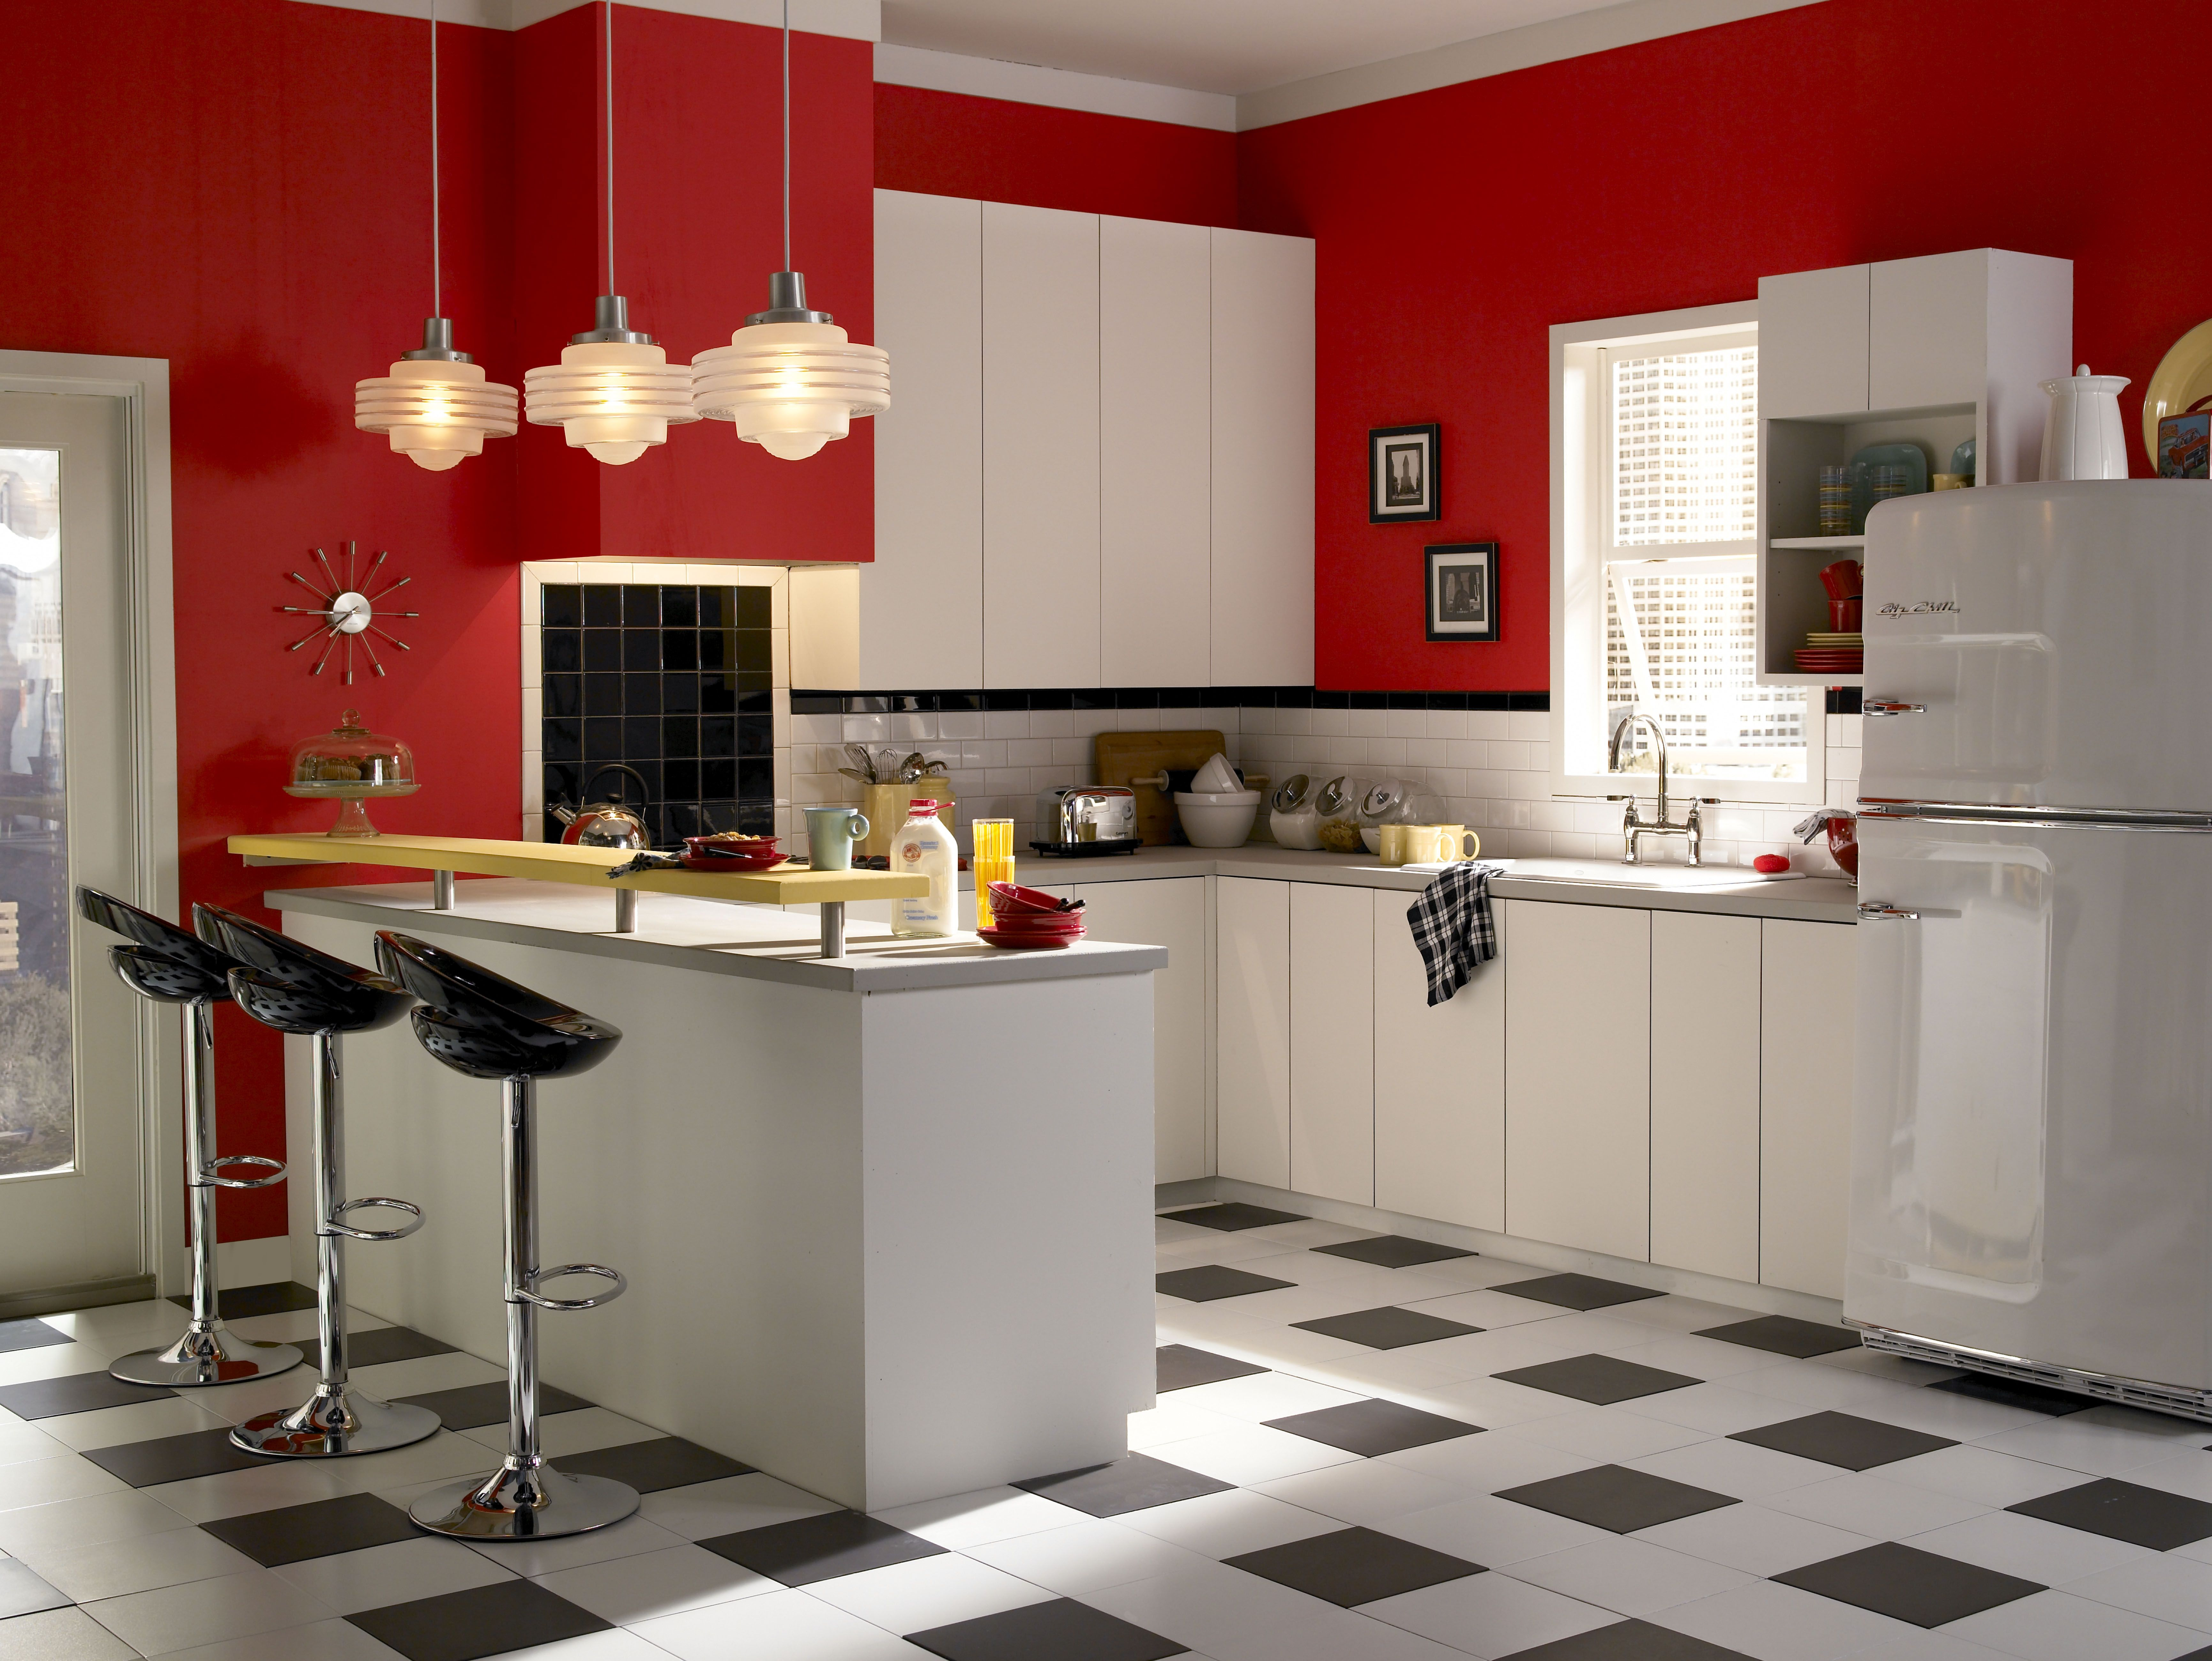 Retro Kitchen Ideas Retro Kitchen Appliances Gallery  Celebrity Kitchens Celebrity